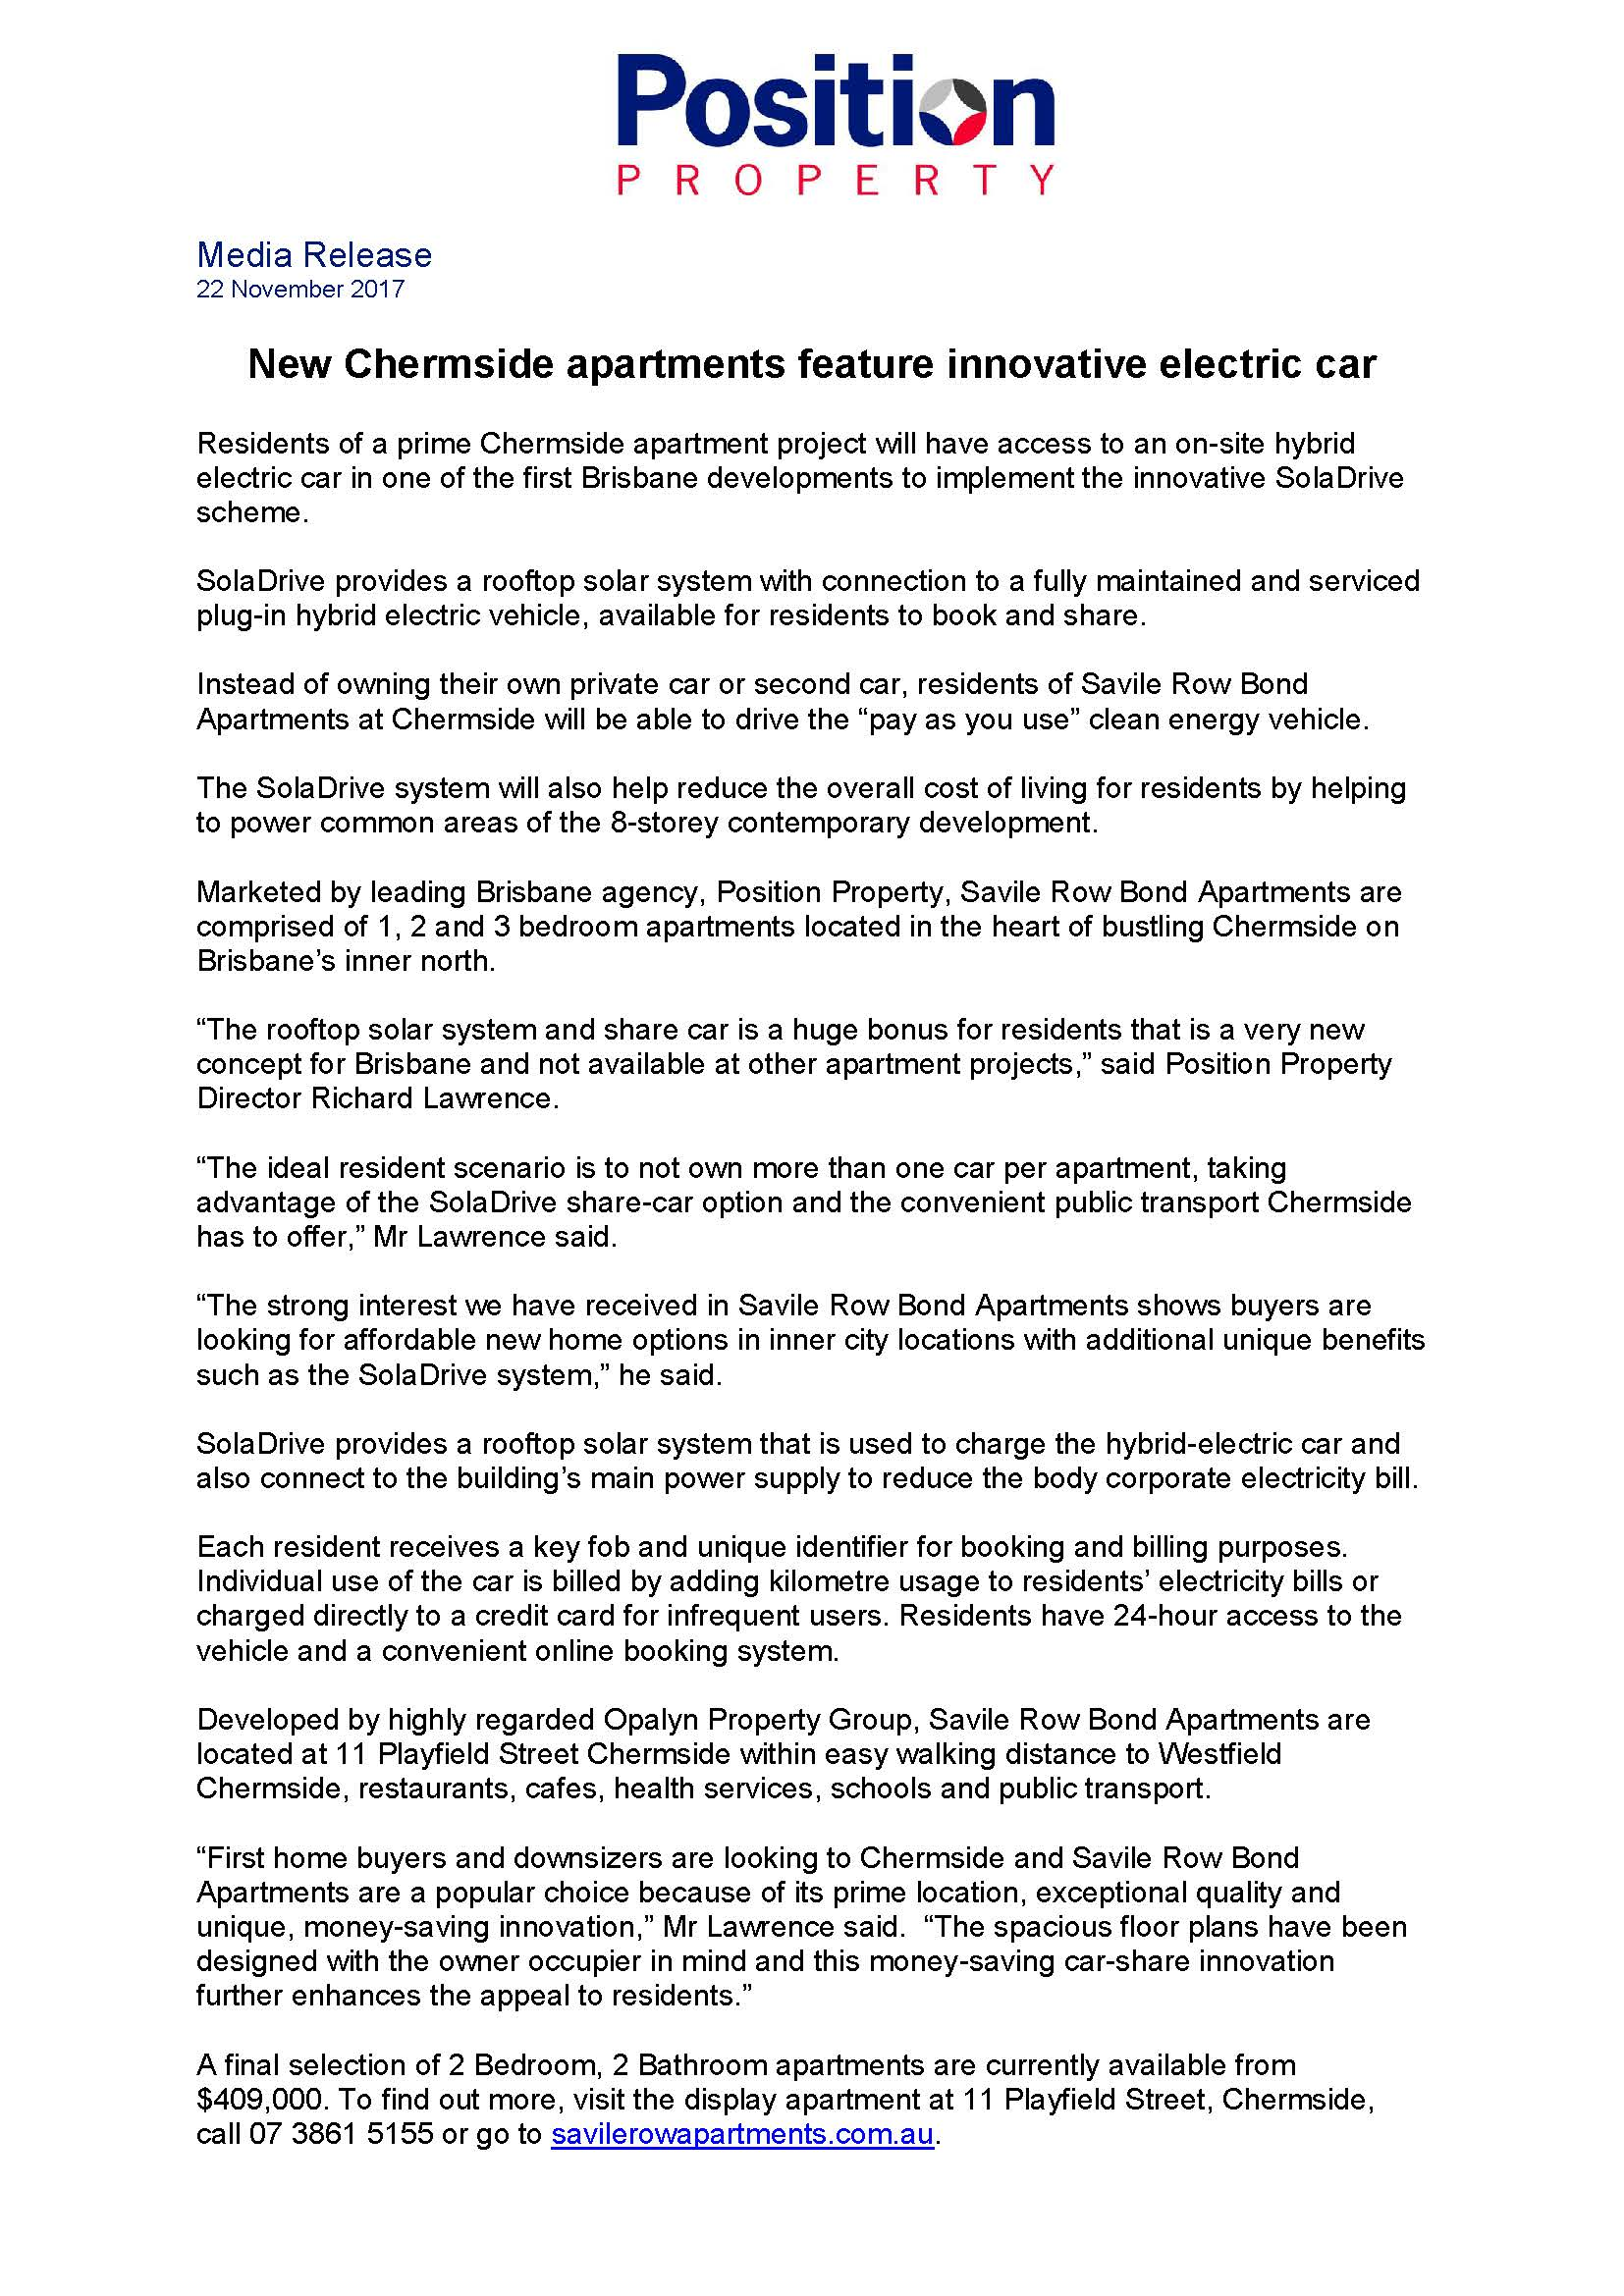 Media Release Chermside - Newsletter.jpg